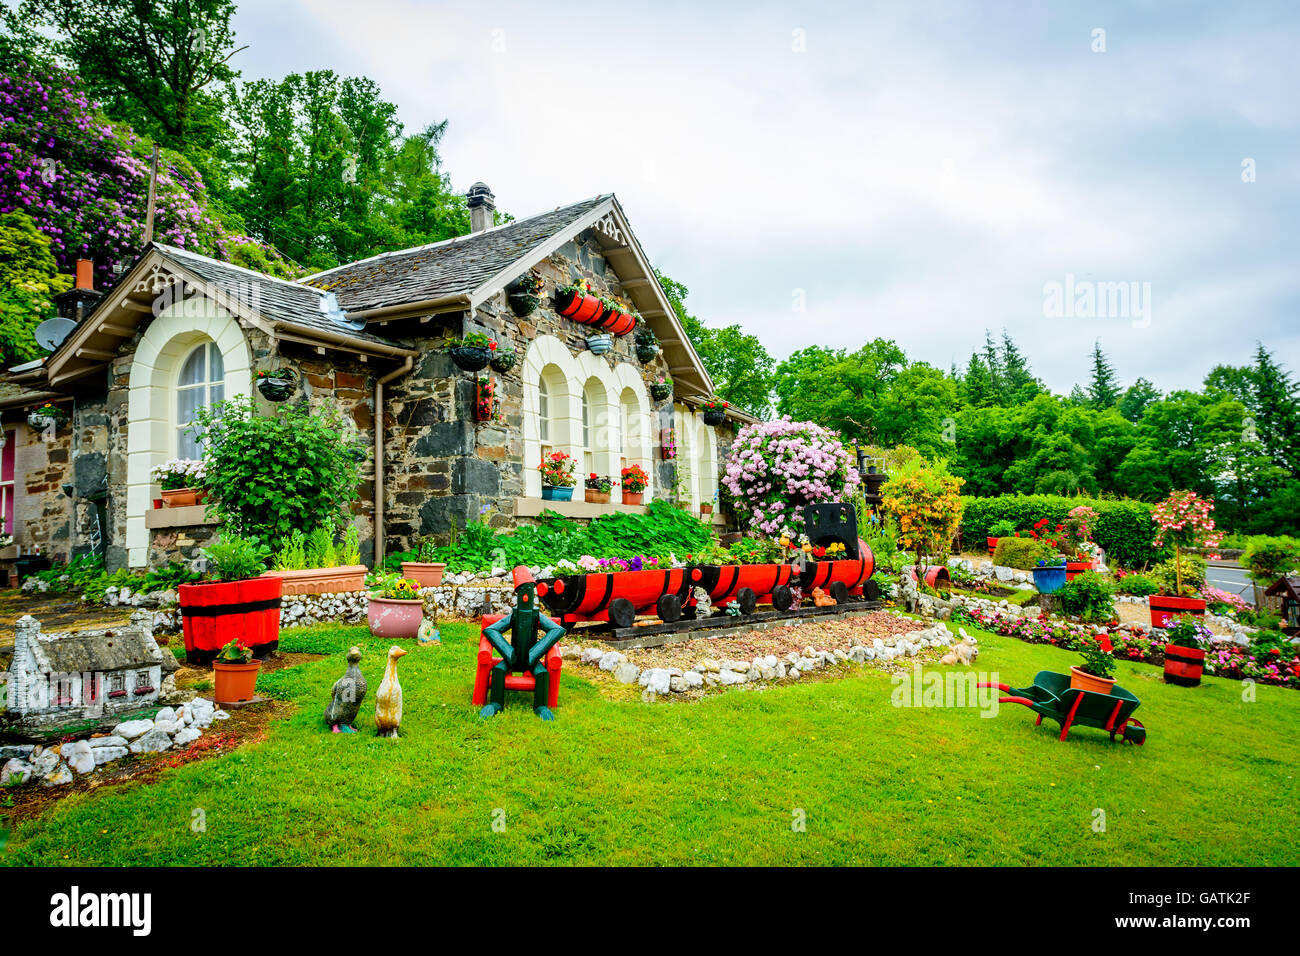 Pretty house in the village of Luss in Loch Lomond and Trossachs National Park in Scotland, United Kingdom - Stock Image